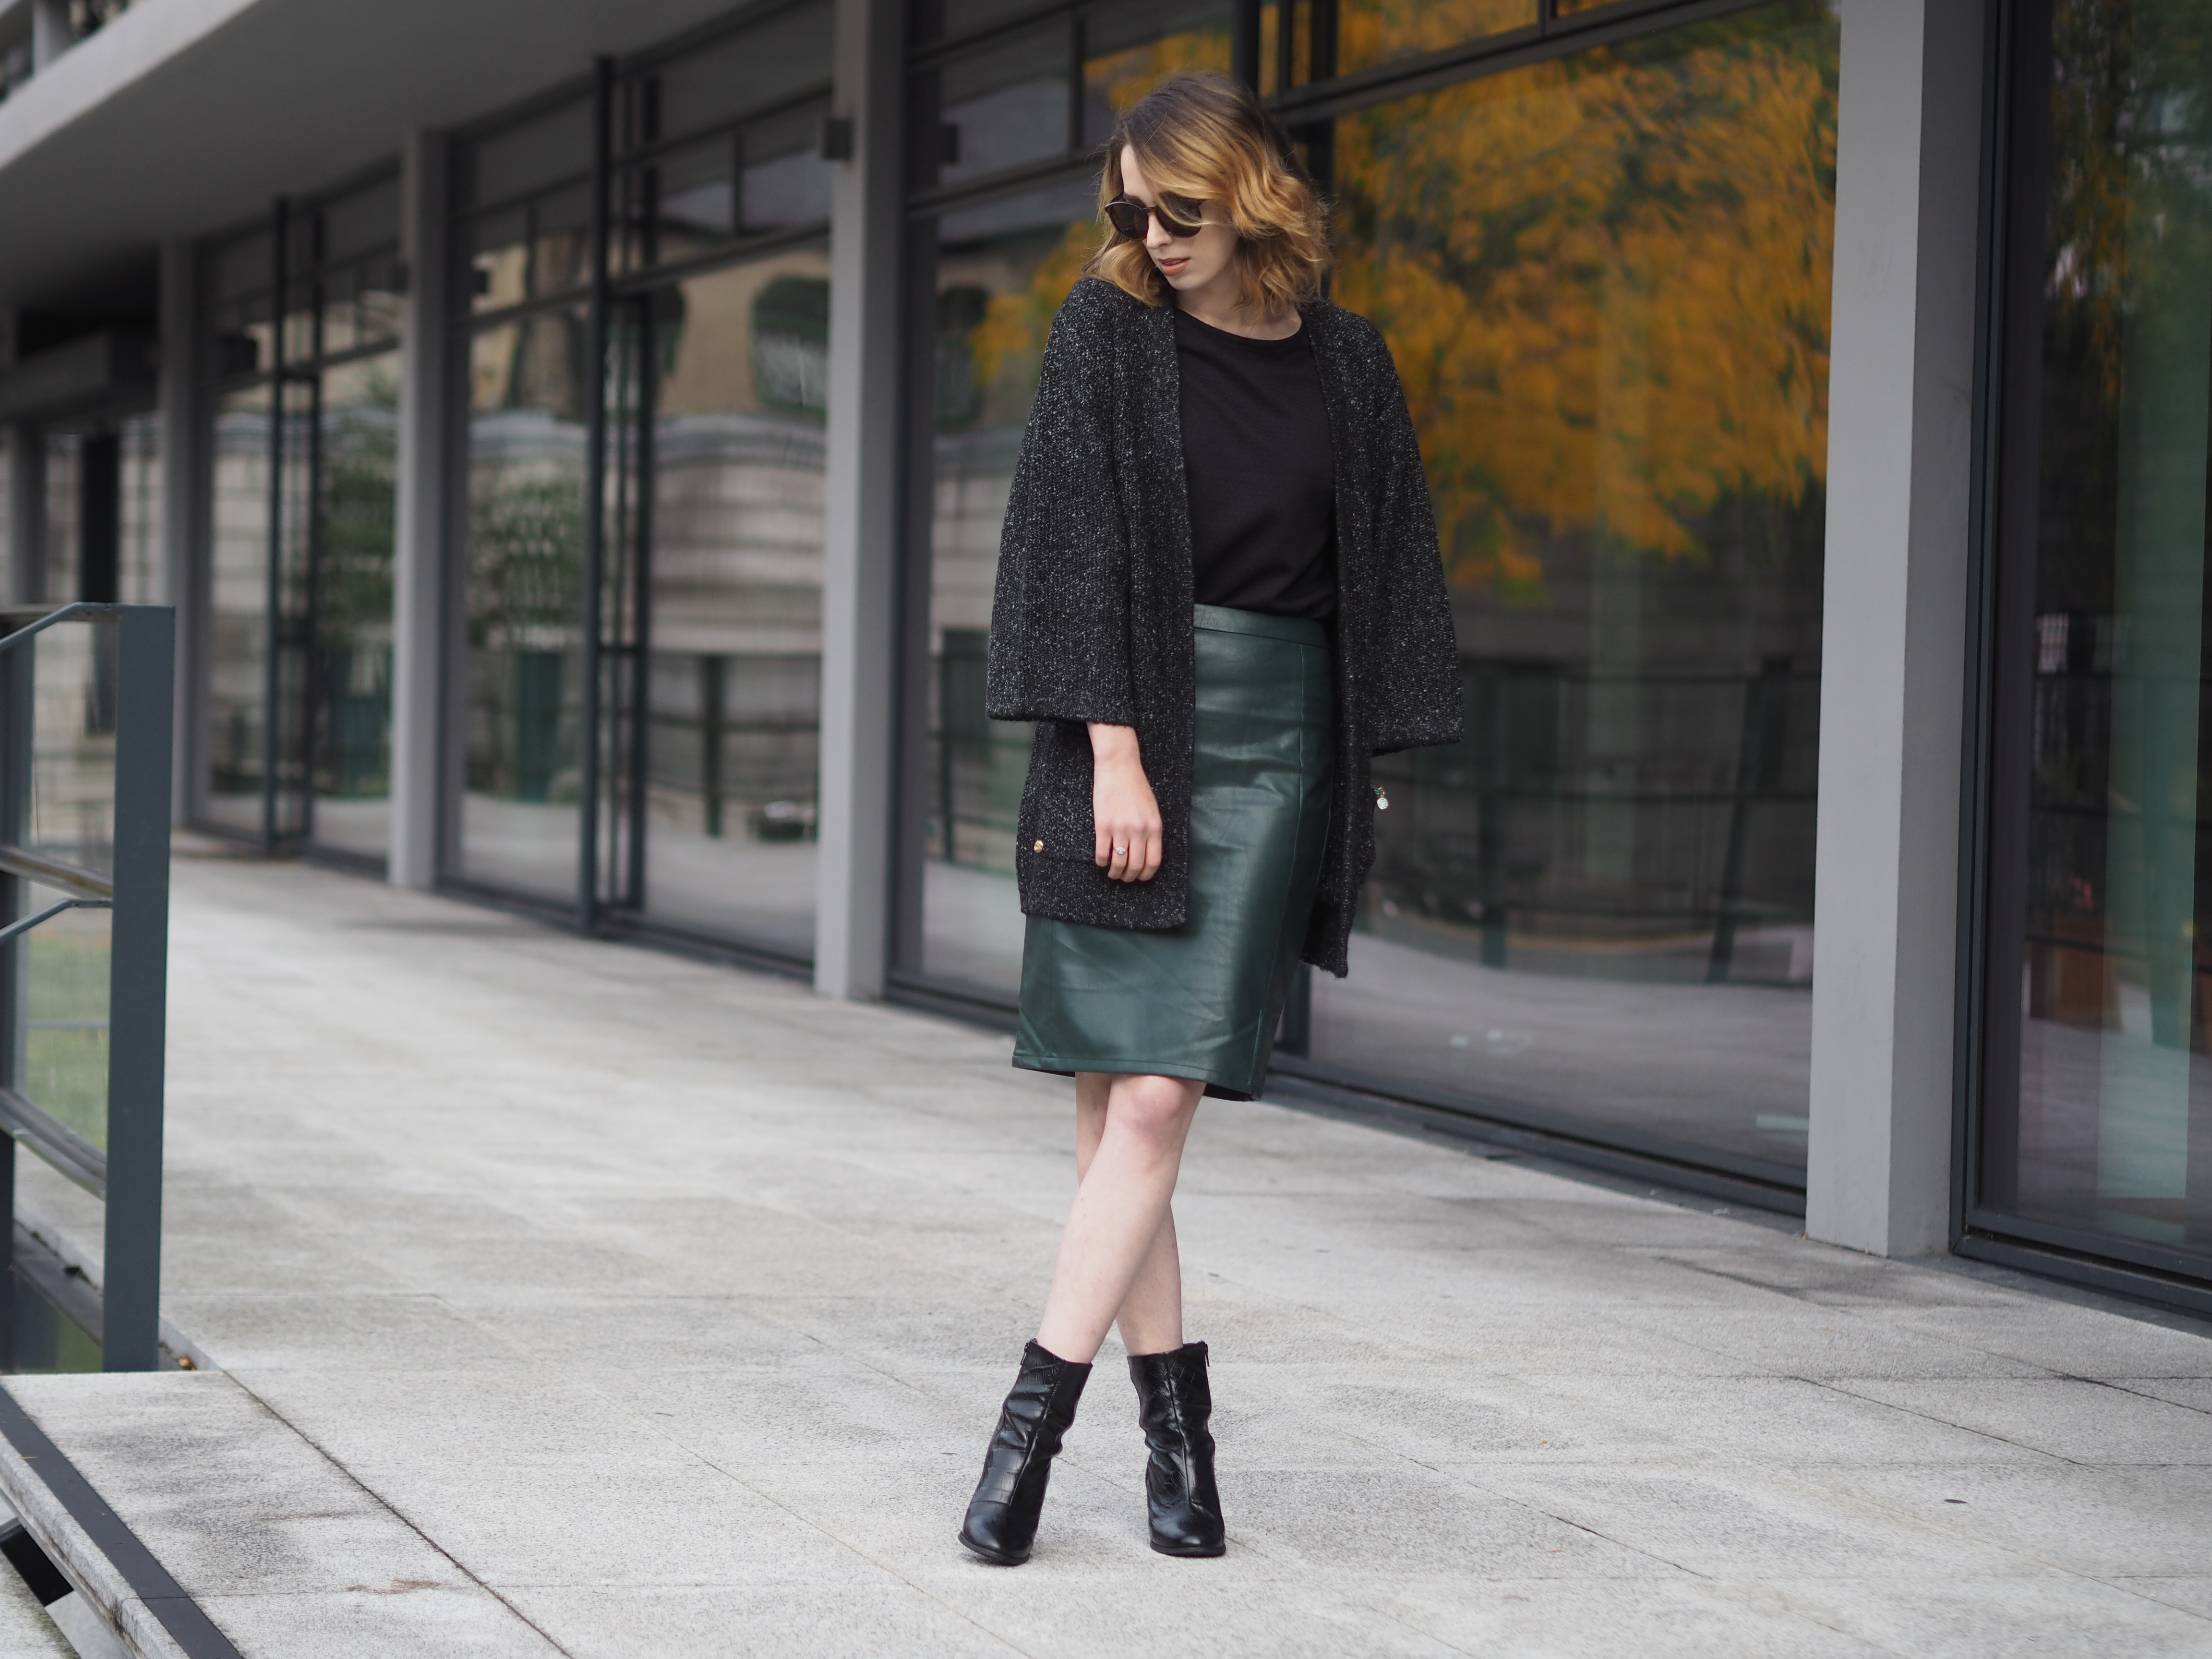 41c619da10c56 Green Leather skirt and Kimono Cardigan for Autumn